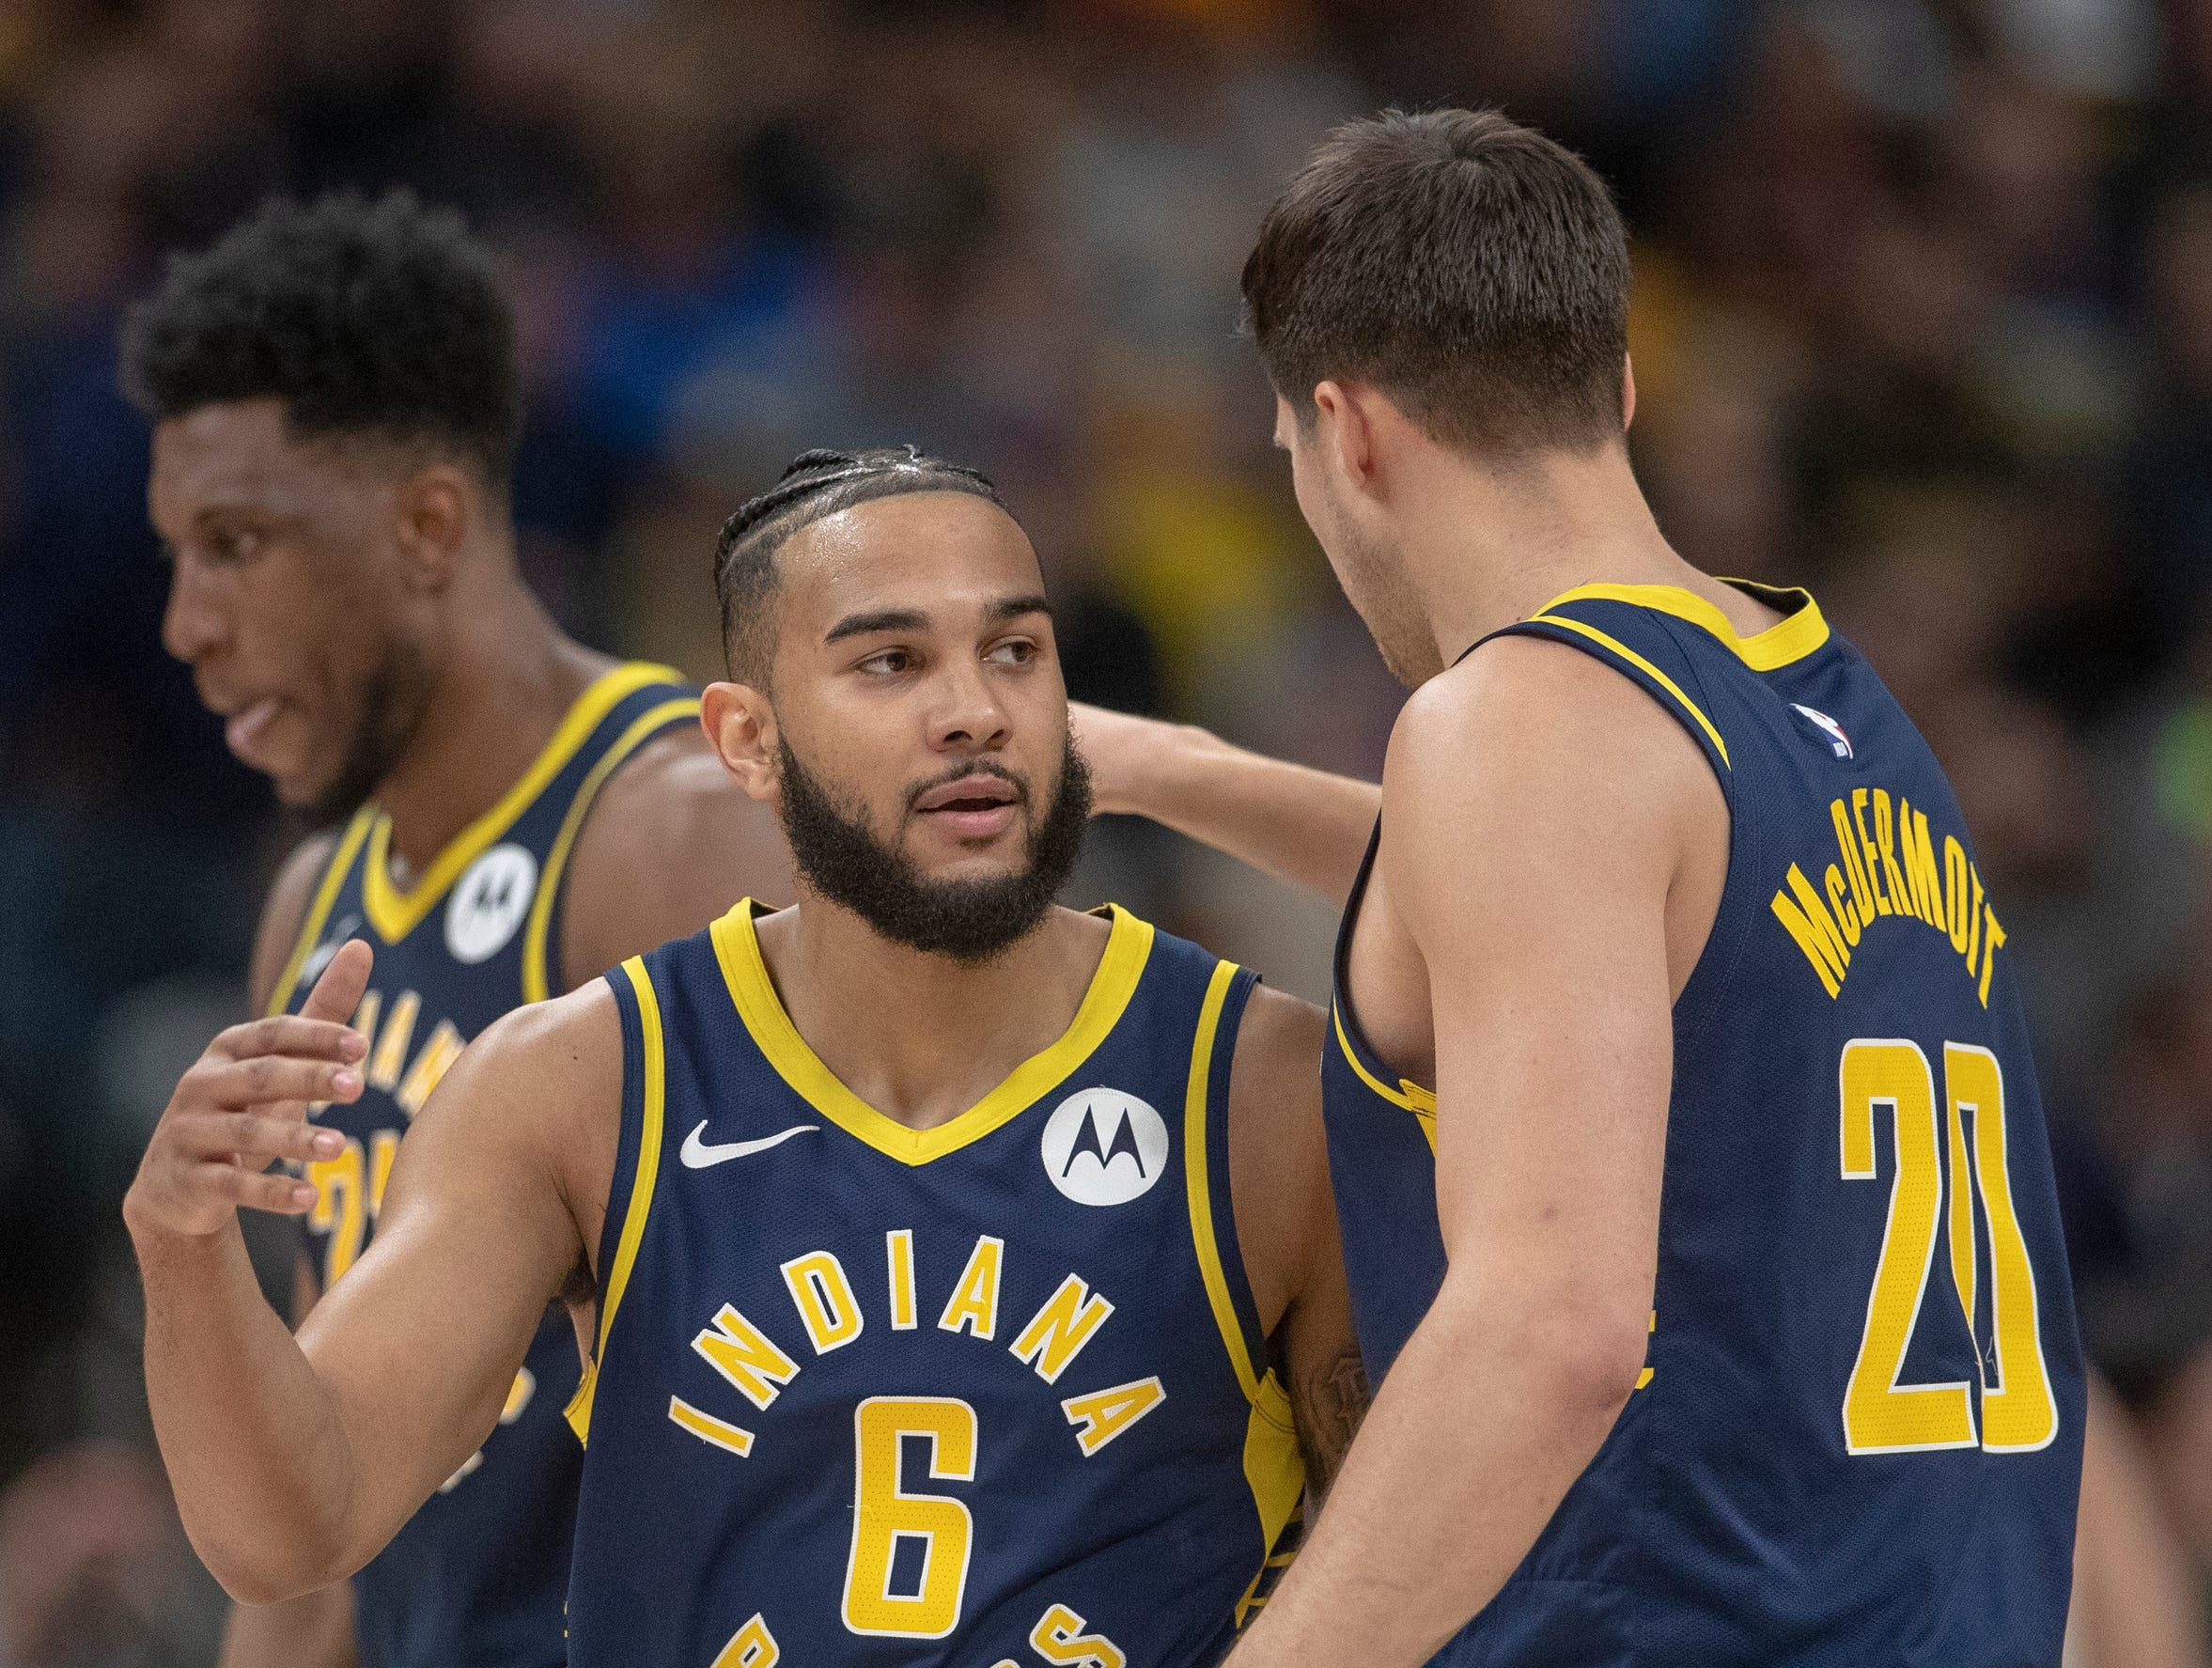 Cory Joseph of the Indiana Pacers (left), and Doug McDermott of the Indiana Pacers embrace after a Pacers basket, Bankers Life Fieldhouse, Wednesday, Feb. 13, 2019. Milwaukee won 106-97.